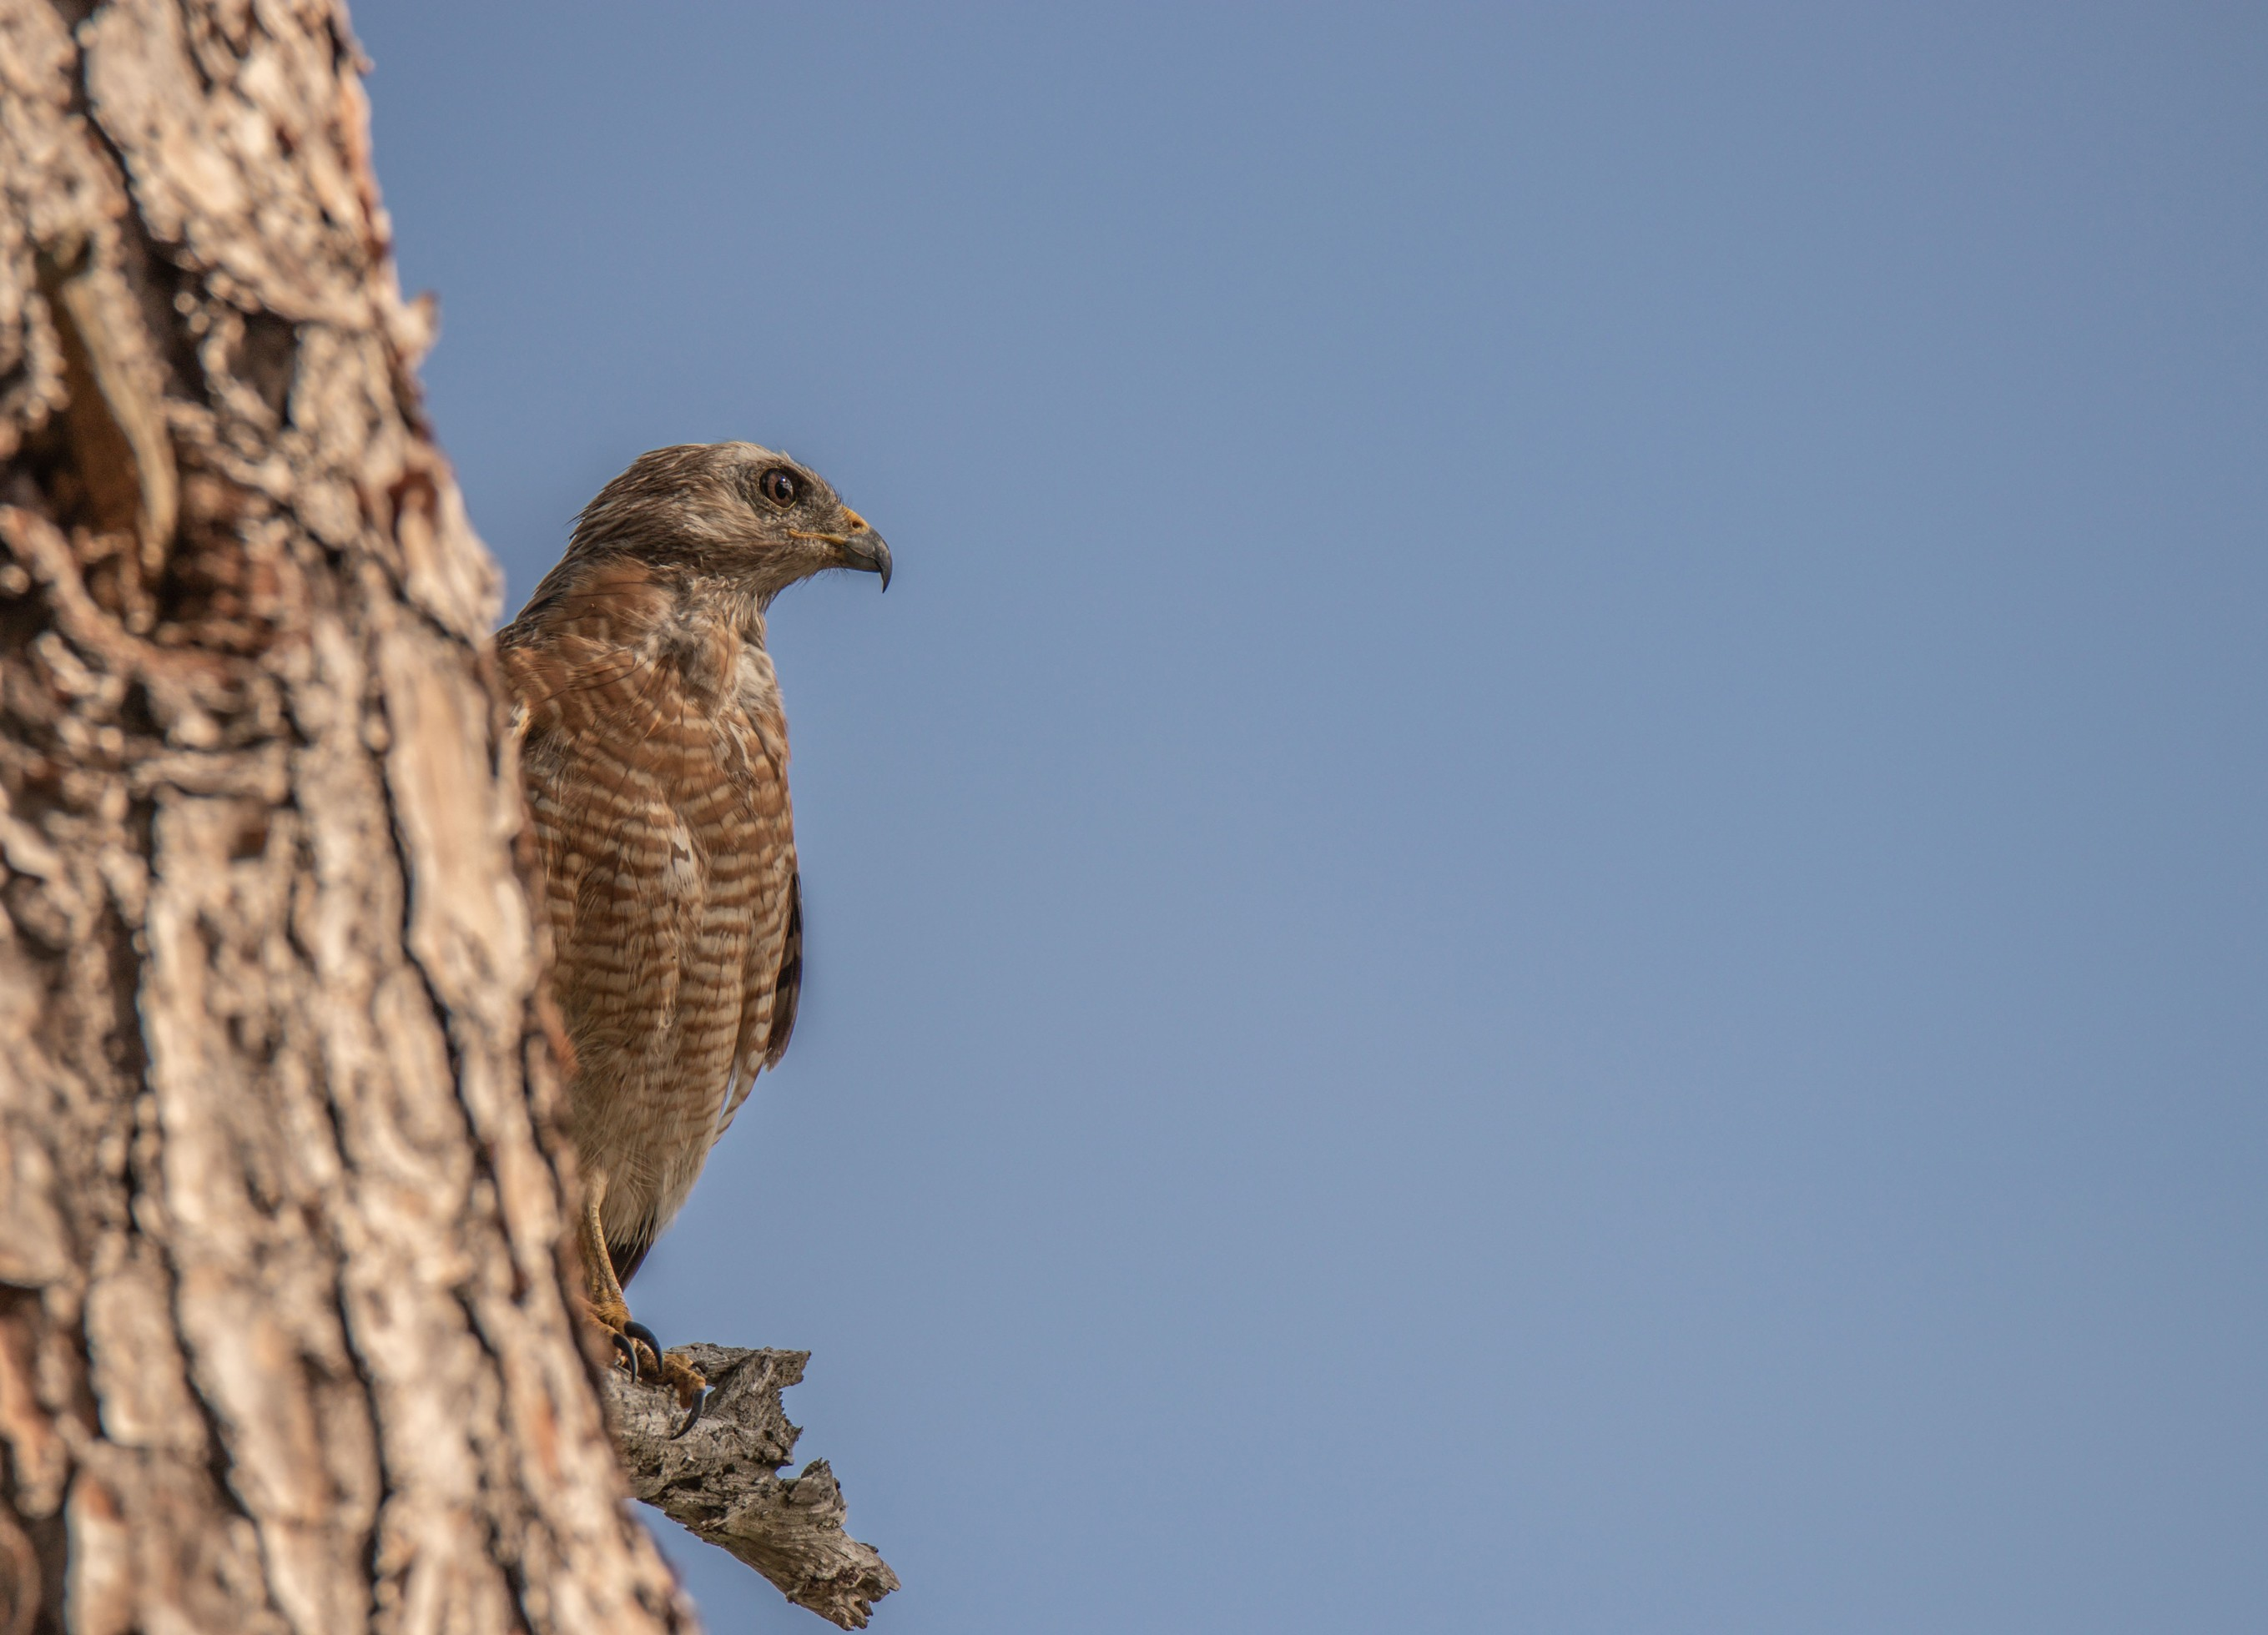 728-Red-Shouldered-Hawk-cvt2-fn.jpg